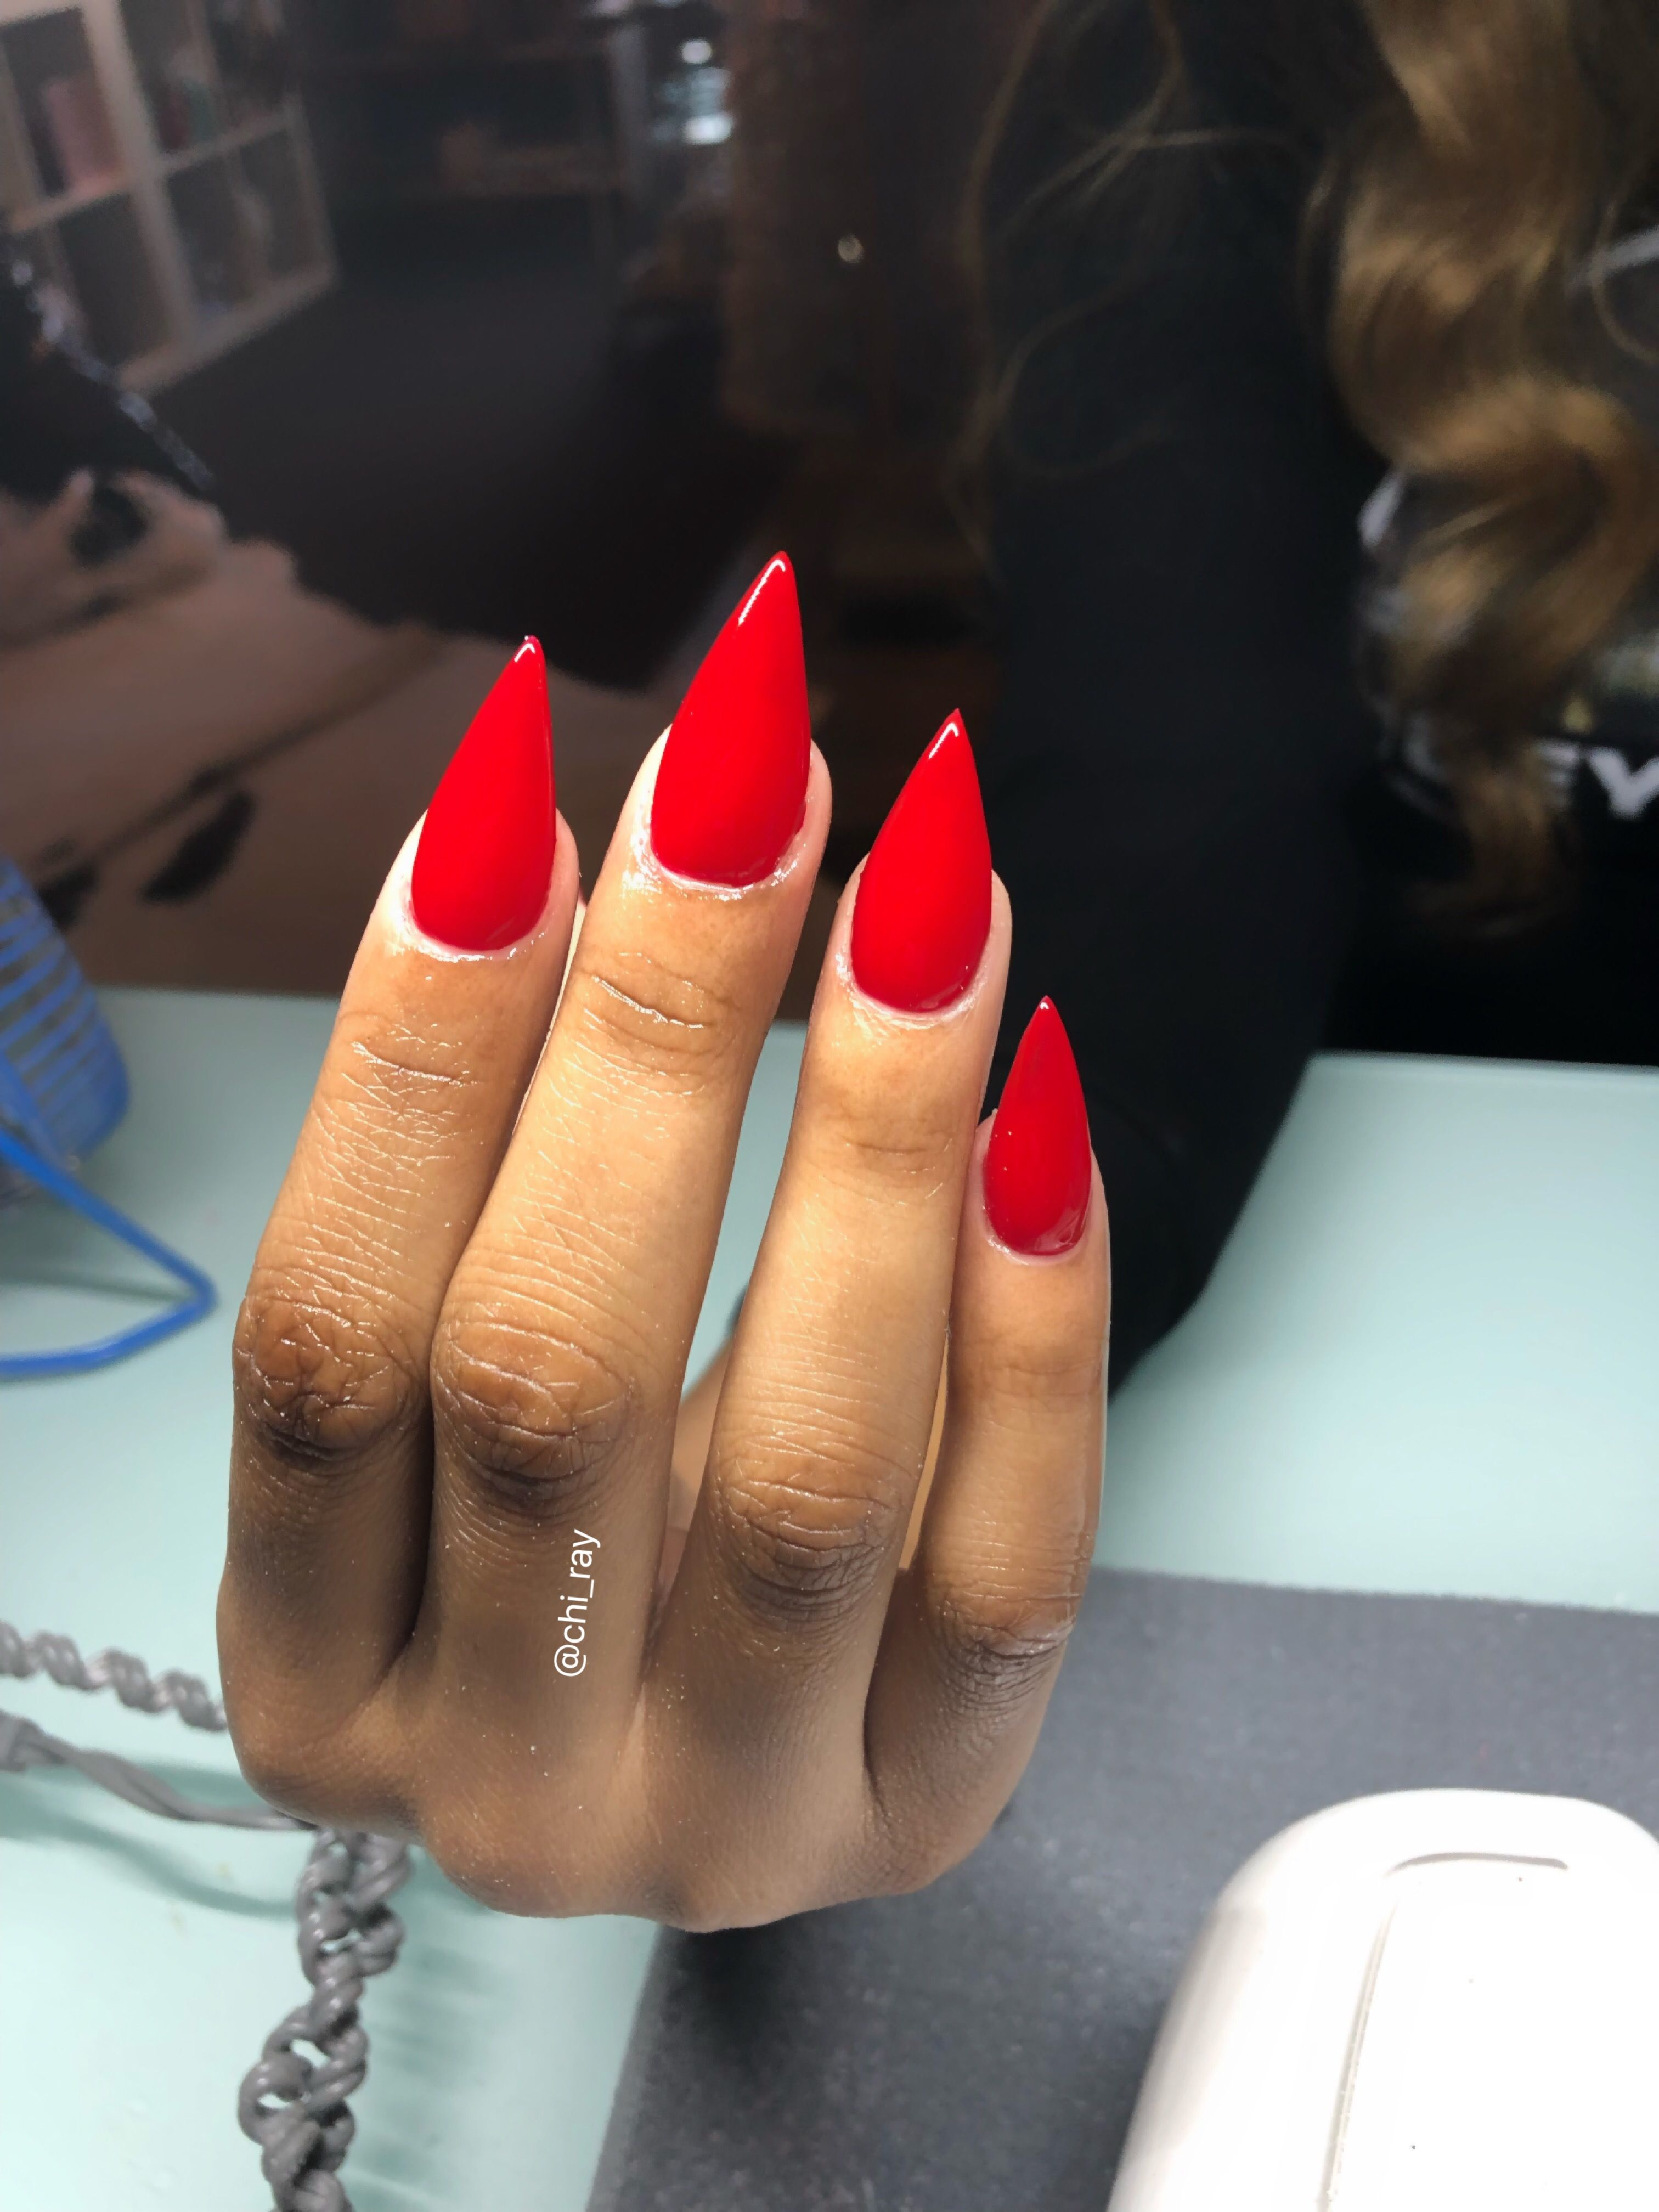 Perfect Red Nails Stiletto Nails Short Nails Medium Nails Big Apple Red Glam 2019 Paintobsessed Red Nails Red Stiletto Nails Red Acrylic Nails